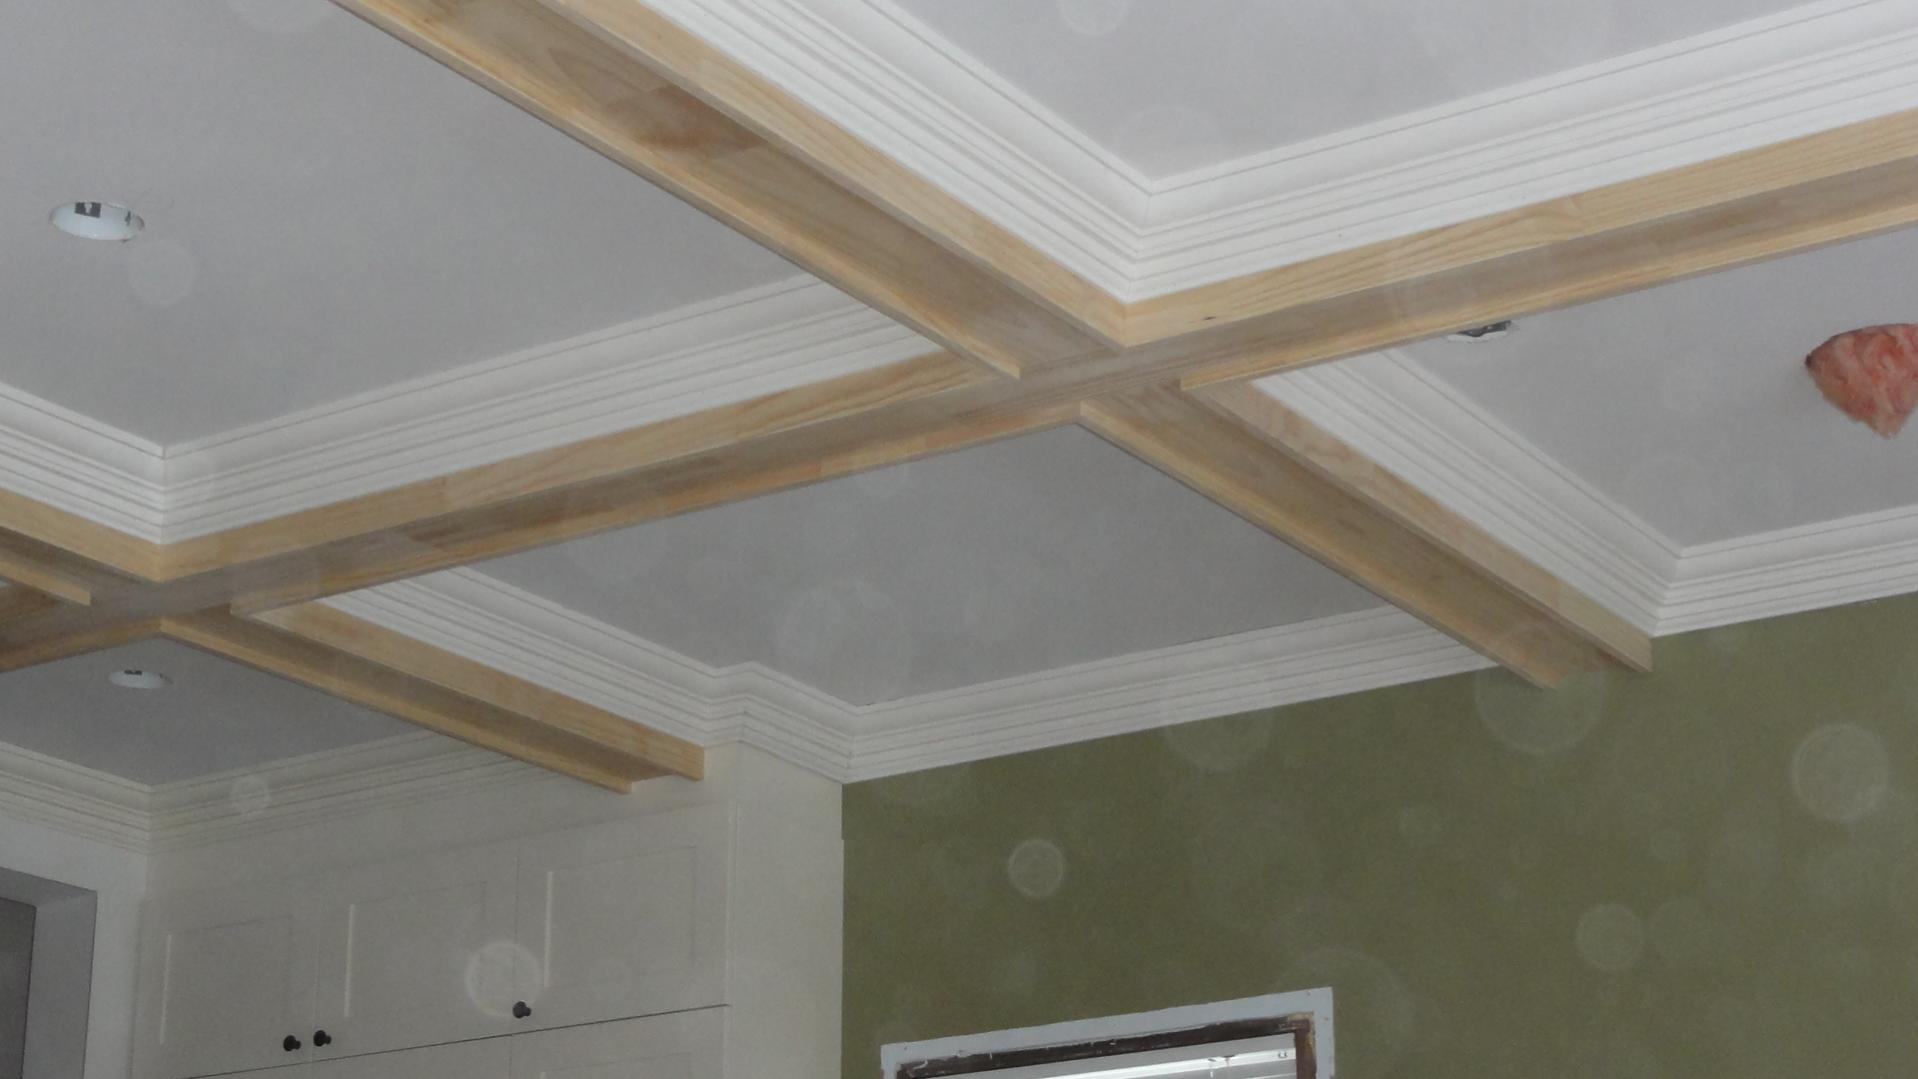 Coffered Ceilings - Page 3 - General Discussion - Contractor Talk